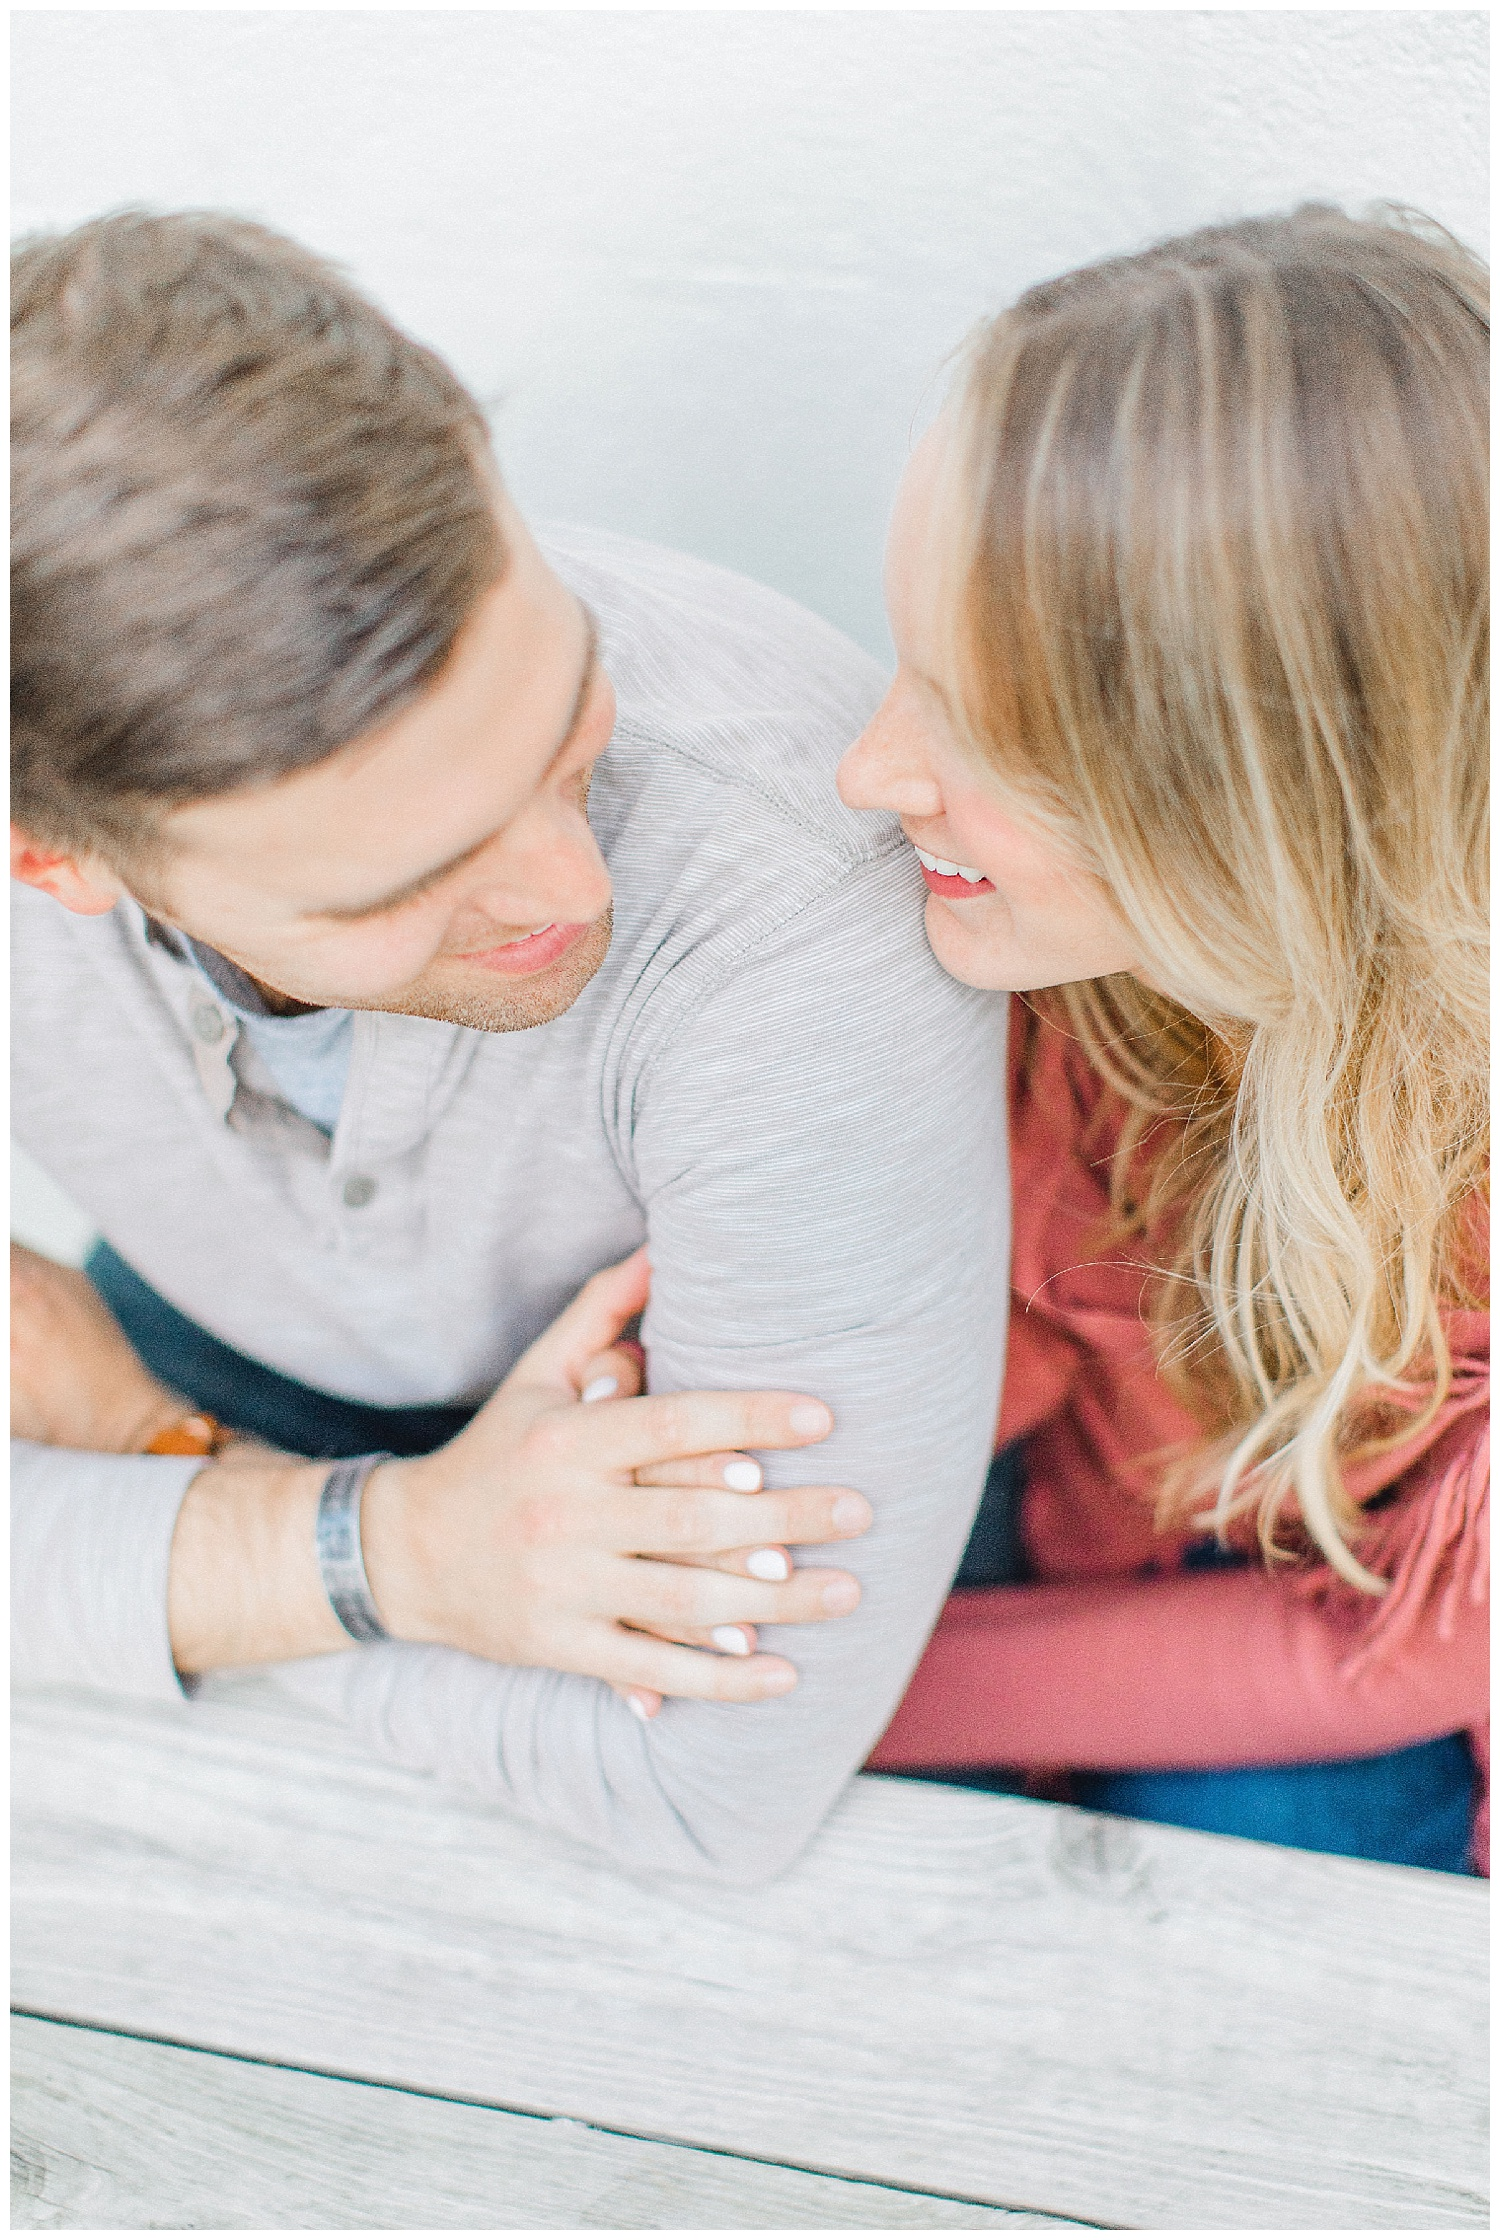 ERC_0817_Downtown Nashville Engagement Session at Barista Parlor | Emma Rose Company Wedding Photographer | Outfit Inspiration for Engagement Session | Kindred Light and Airy Photographer.jpg